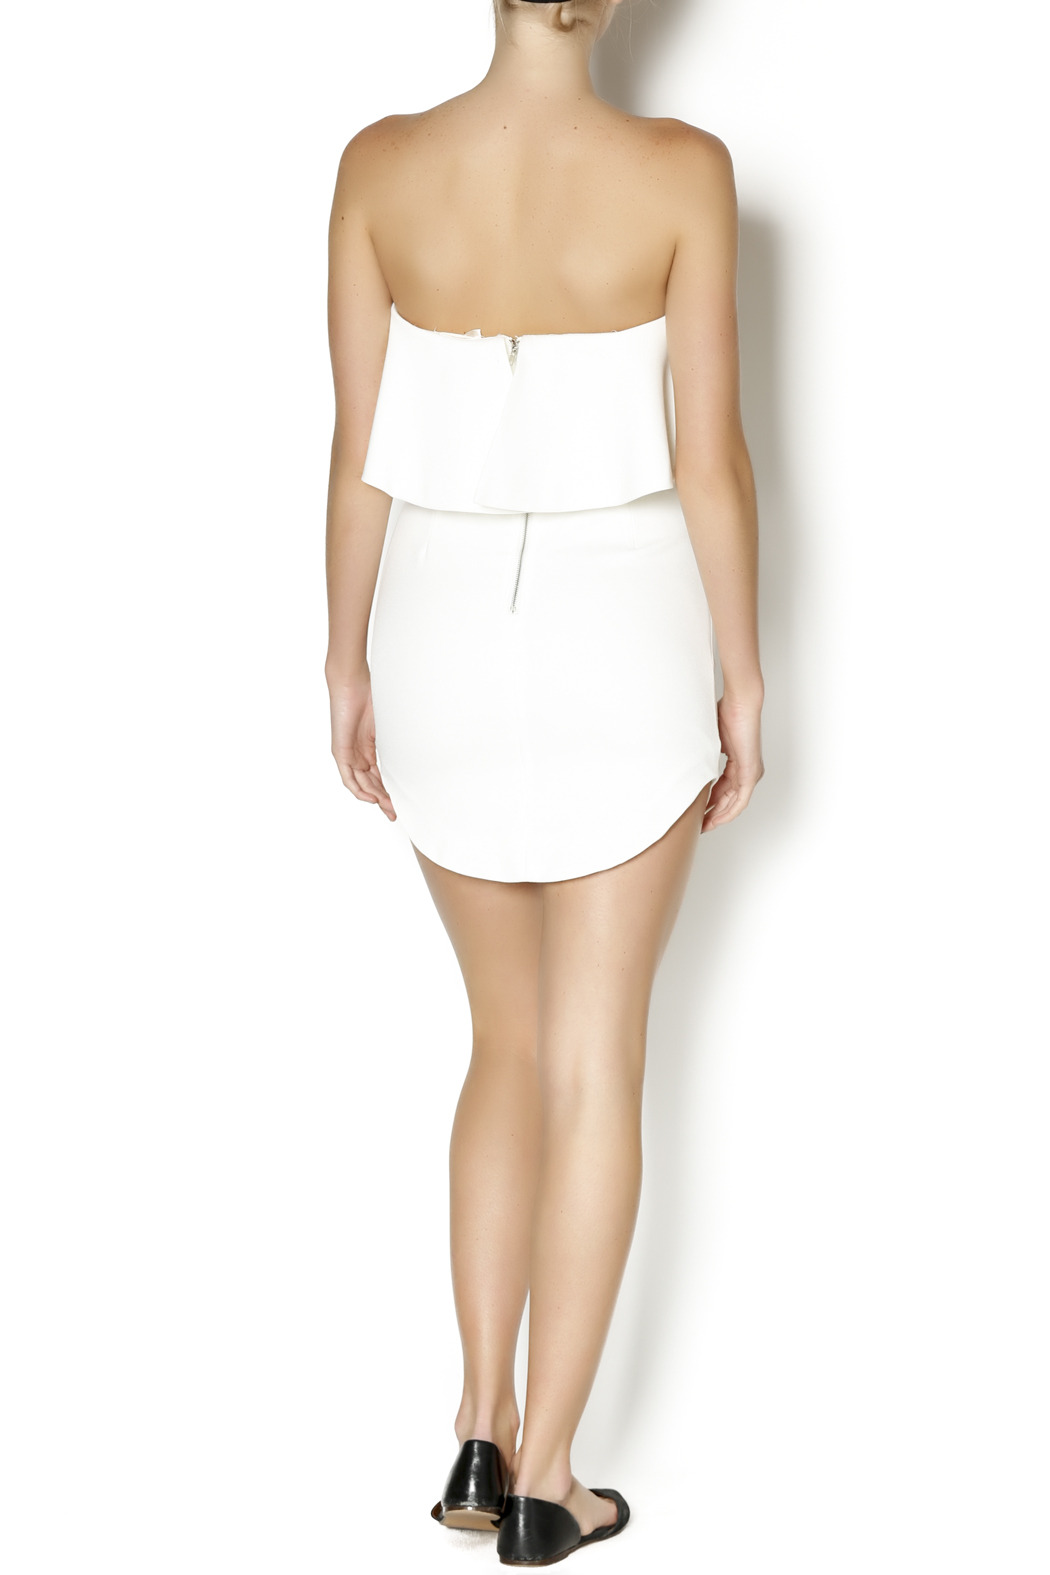 luxxel Tiered White Dress - Side Cropped Image